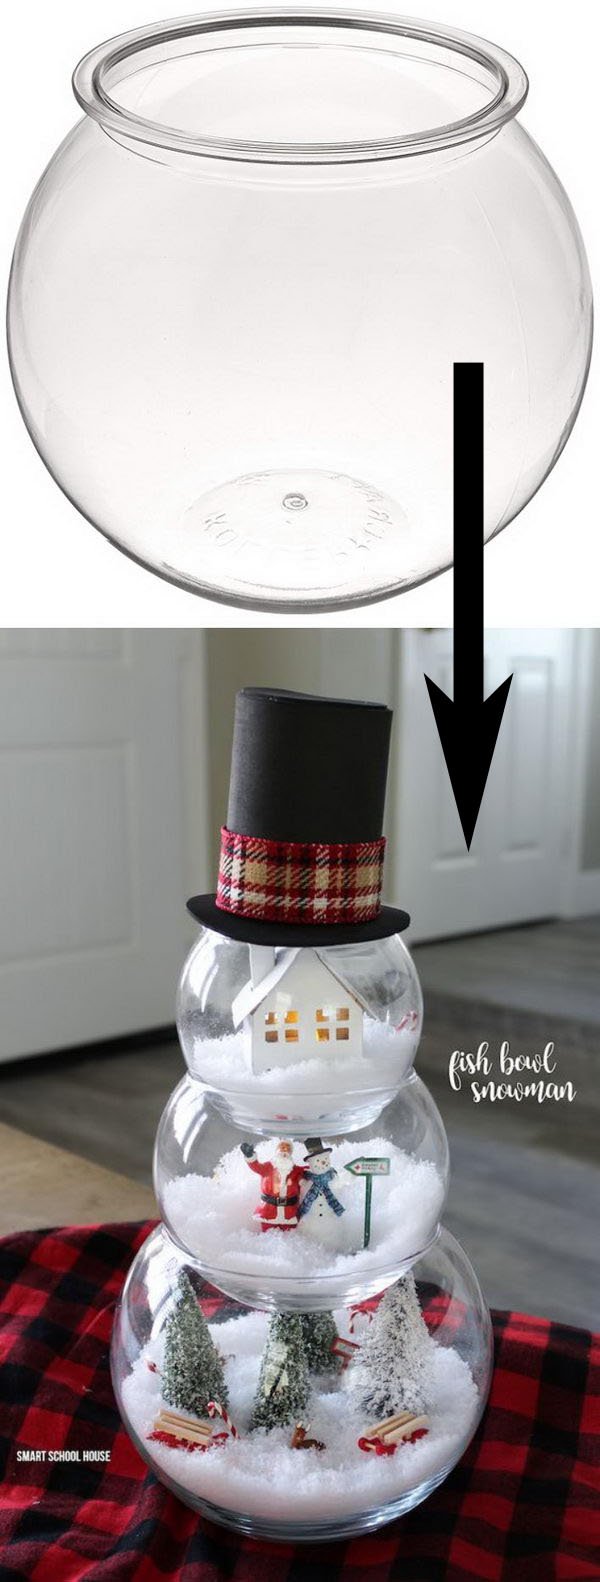 DIY Fish Bowl Snowman.